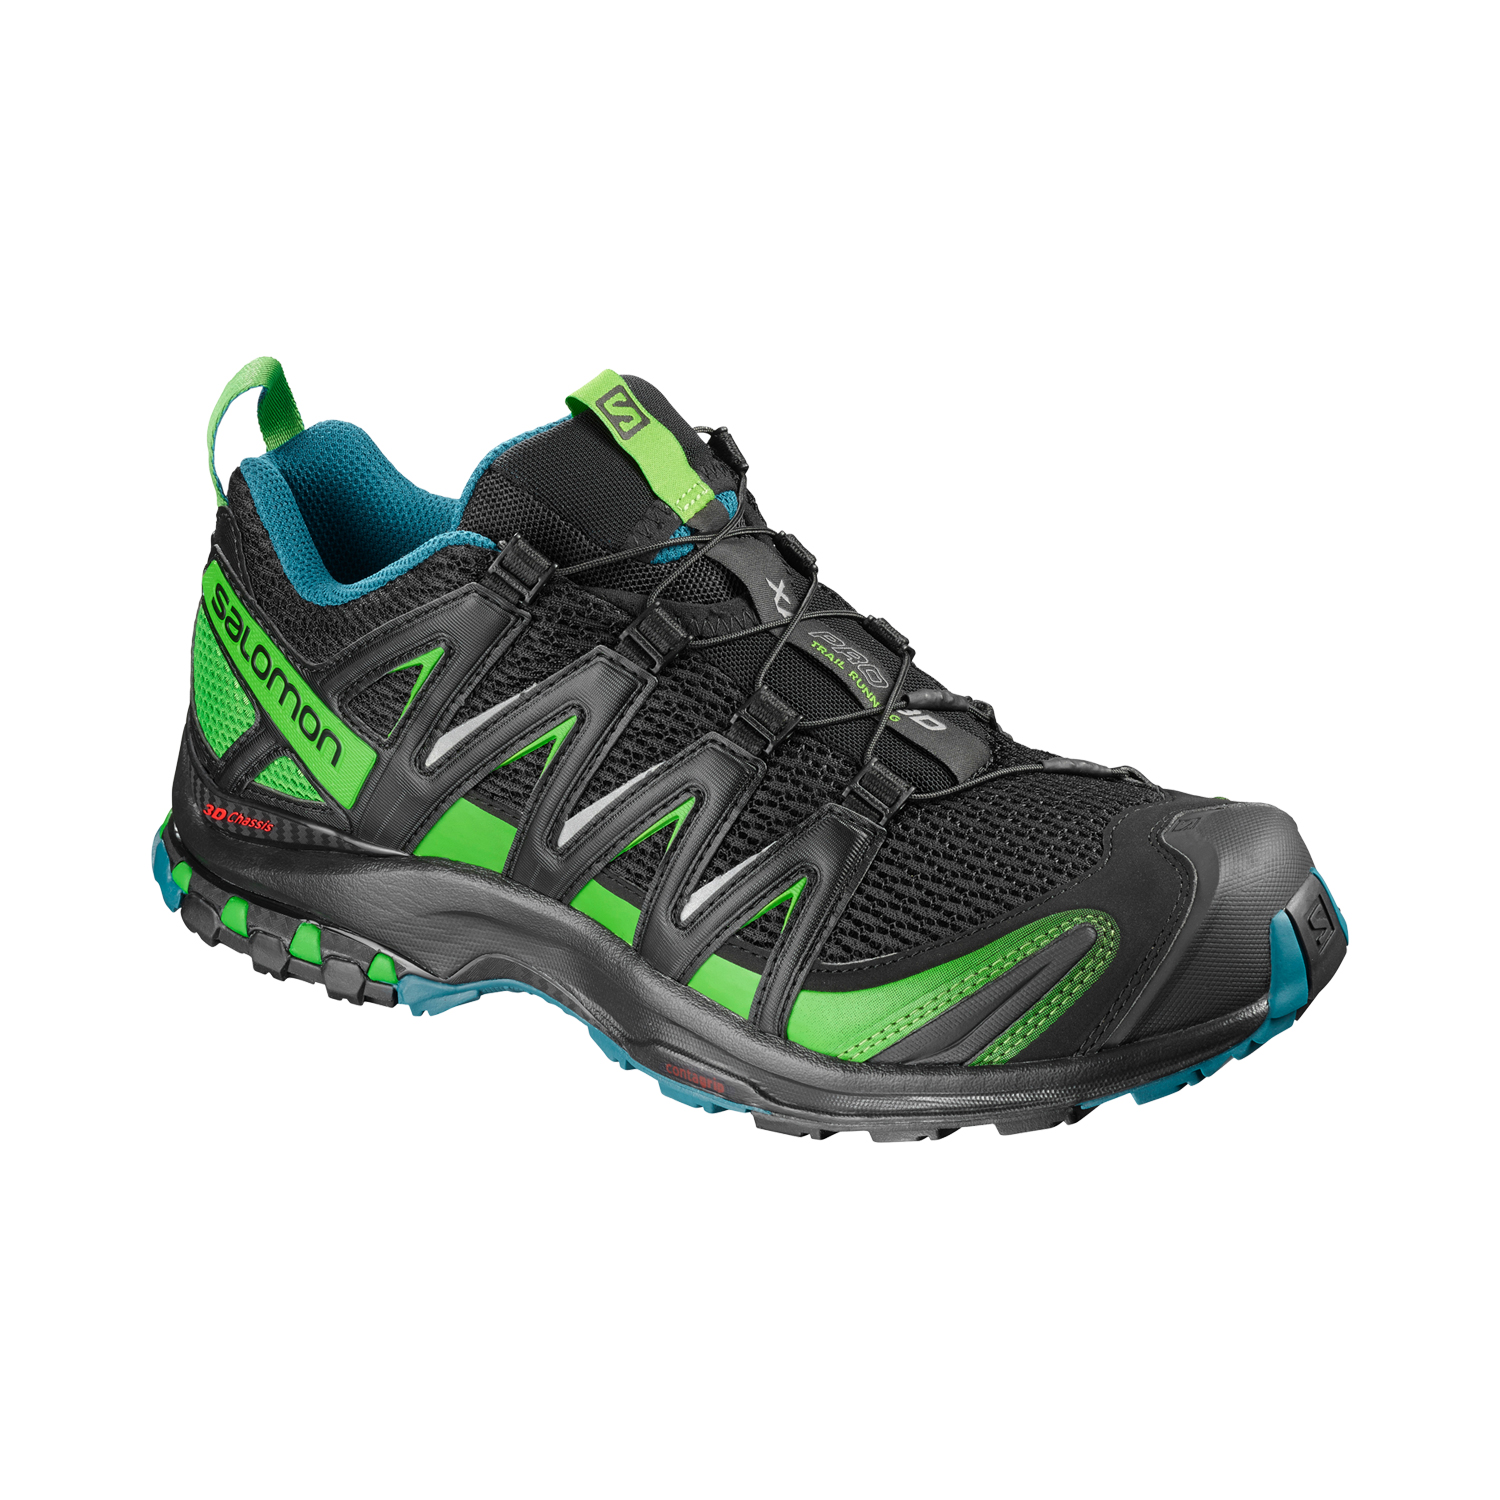 salomon xa pro 3d herren trail laufschuhe ebay. Black Bedroom Furniture Sets. Home Design Ideas